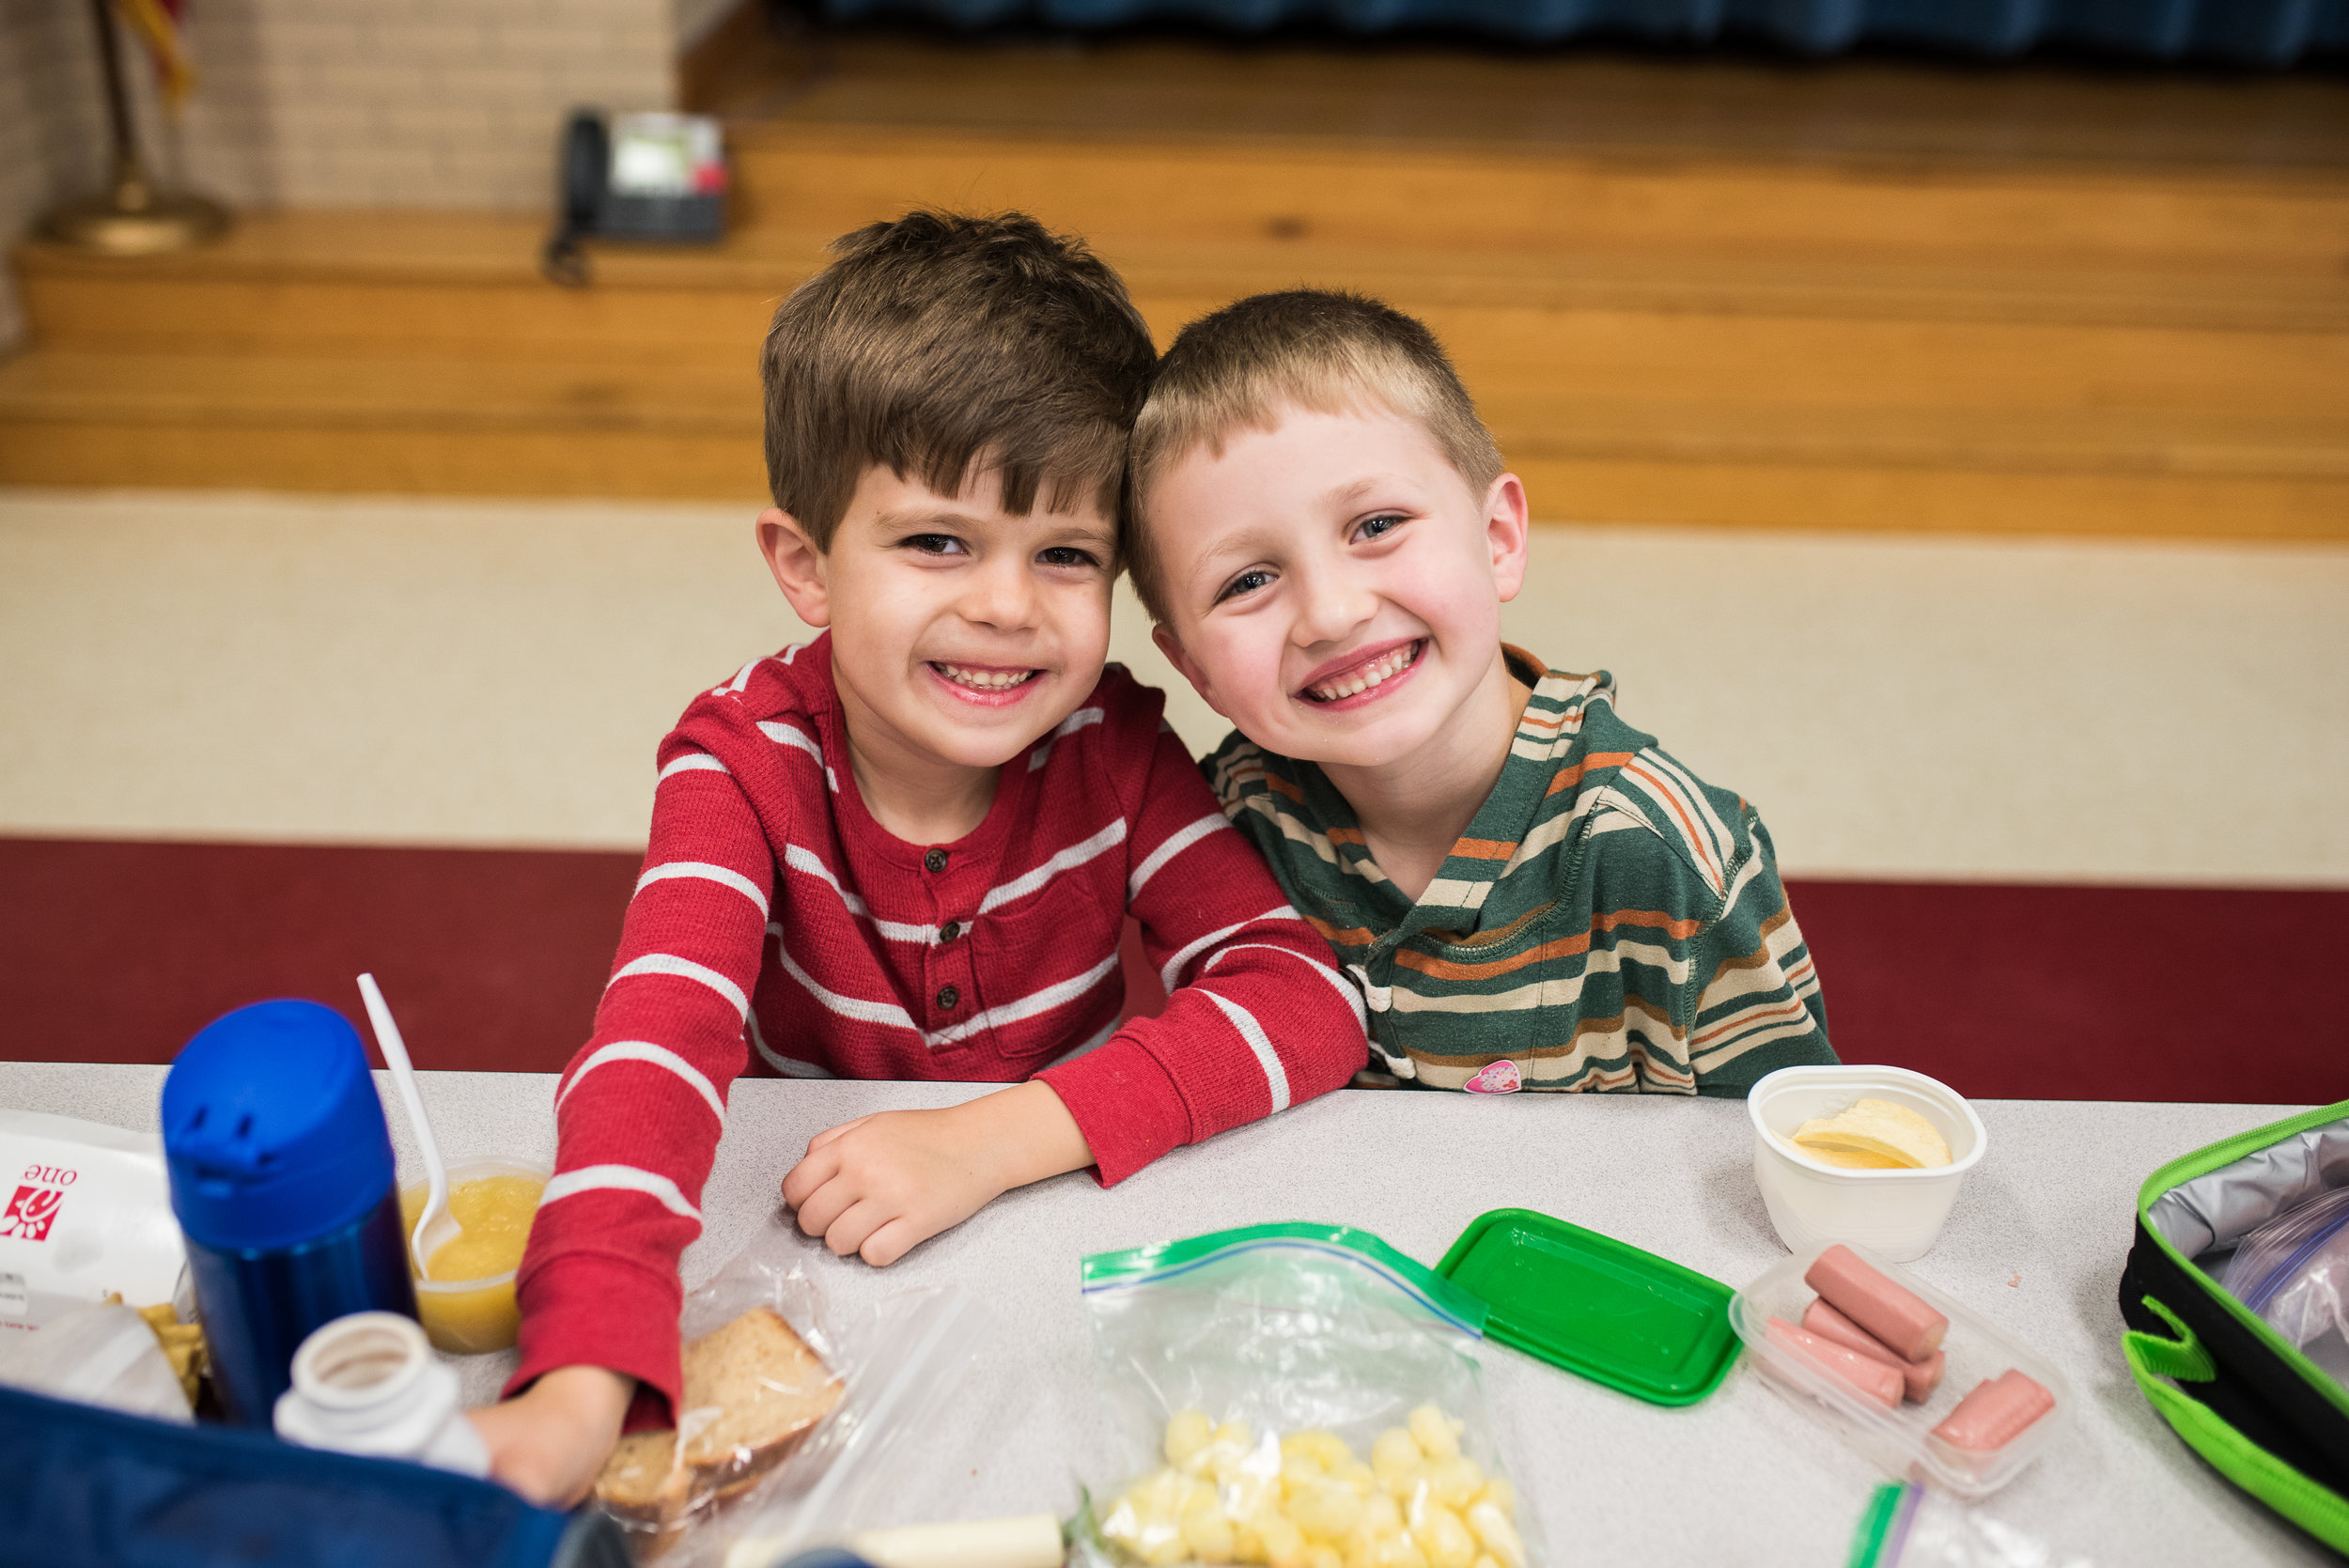 One of the best parts of Pre-K? Lunch.